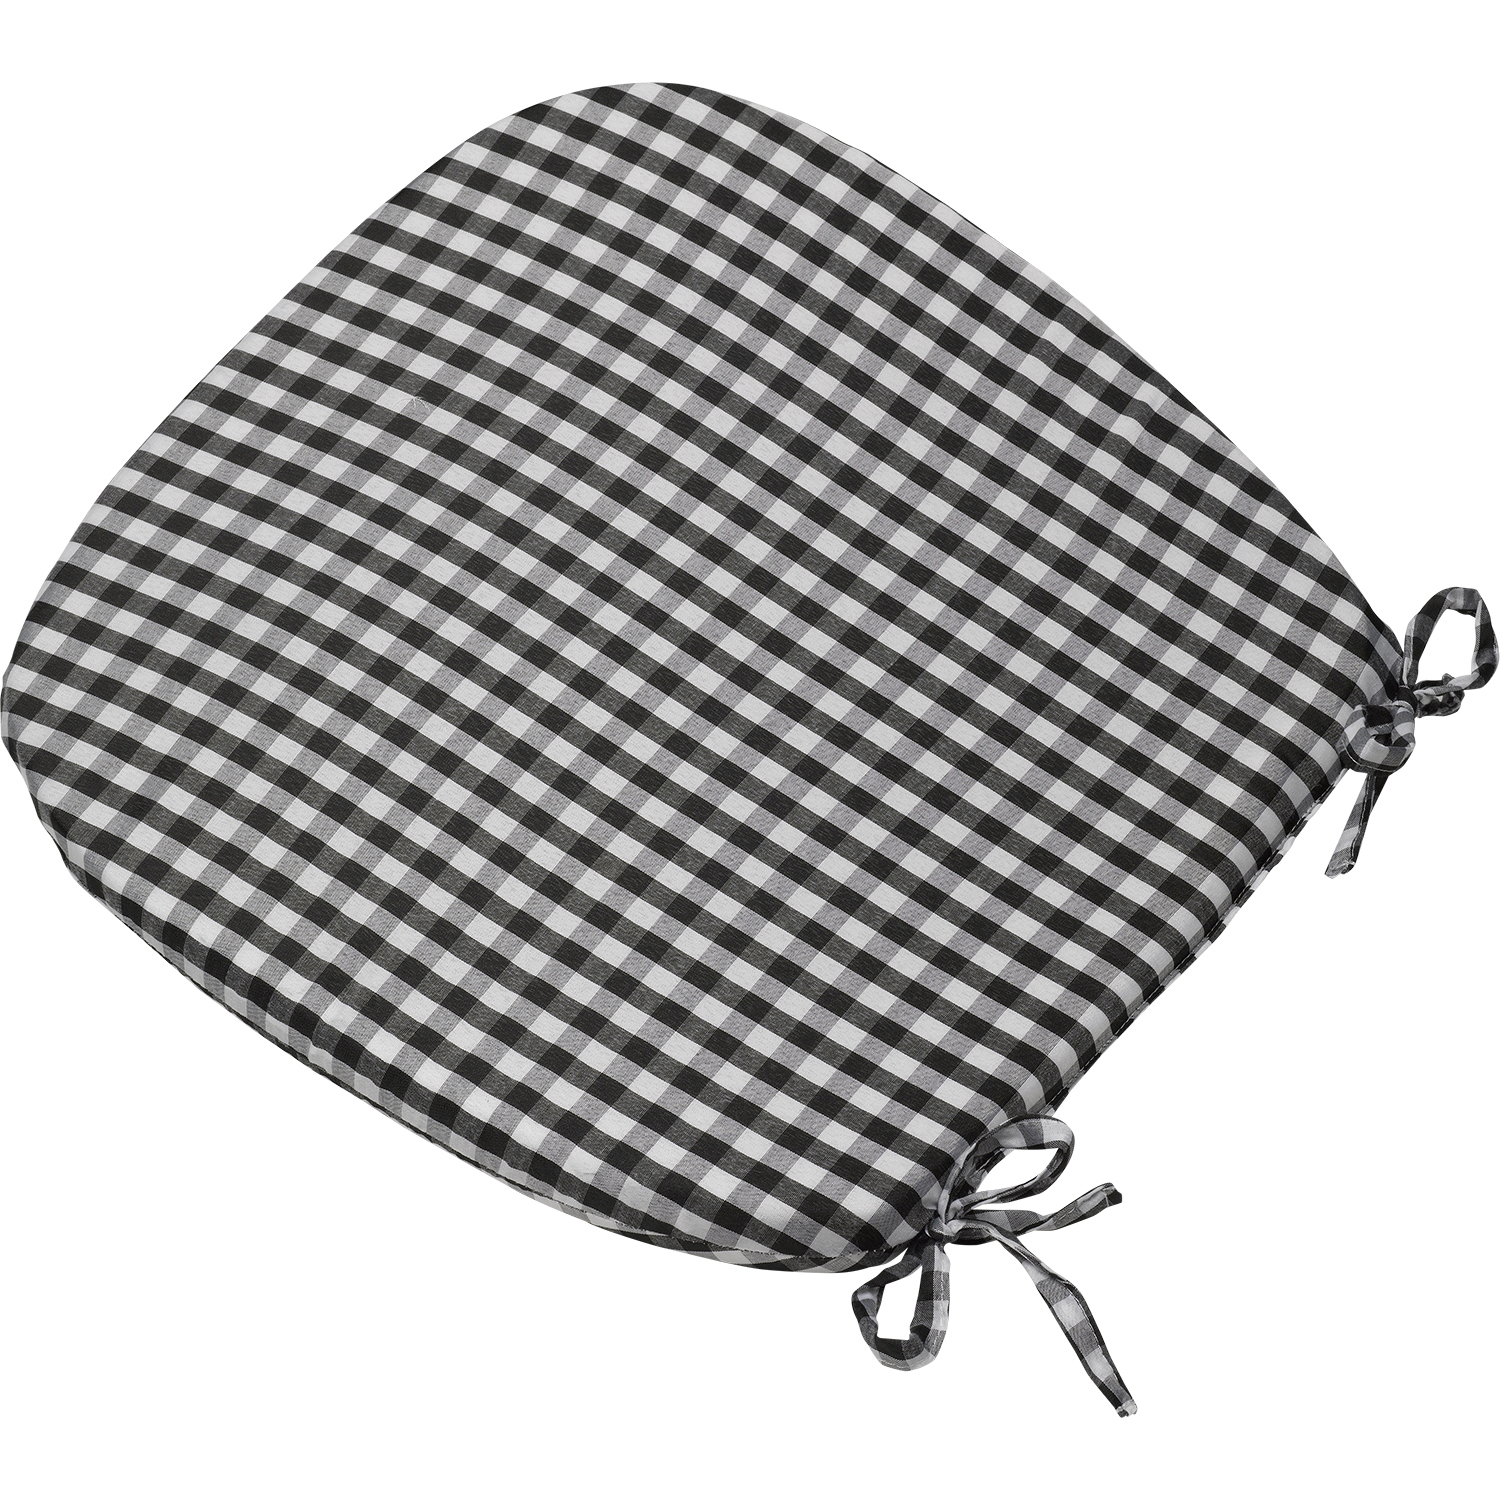 Dining Chair Pads Gingham Check Tie On Seat Pad 16 Quot X 16 Quot Kitchen Outdoor